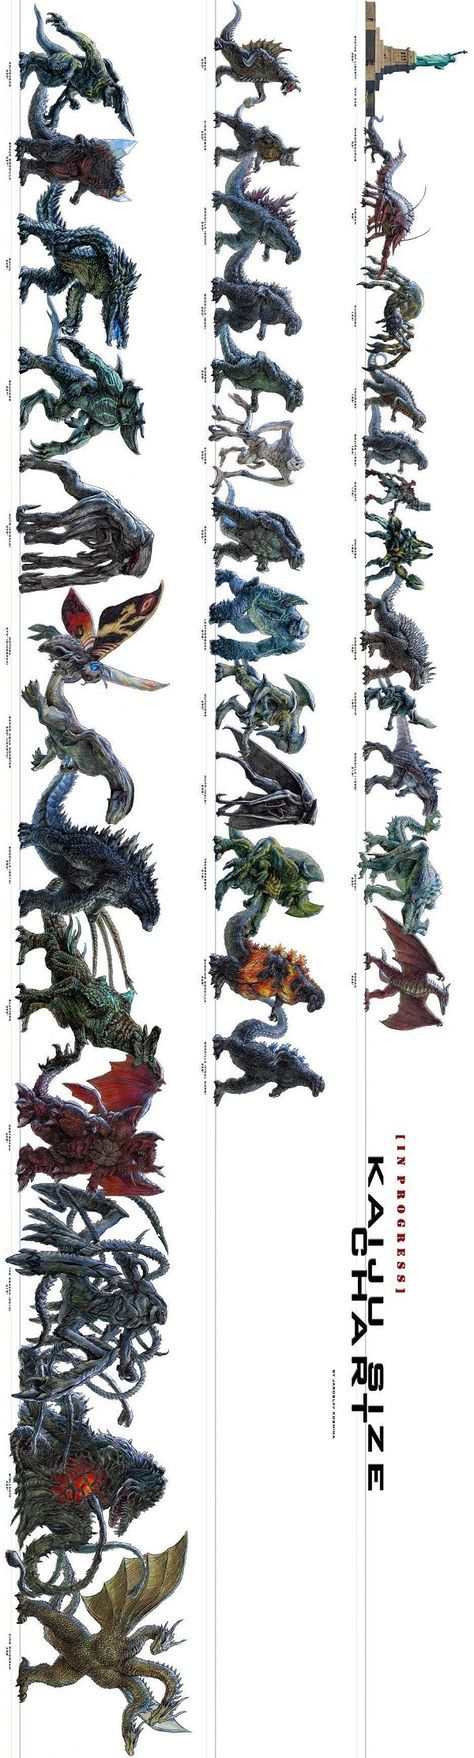 Kaiju Size Chart (updated)